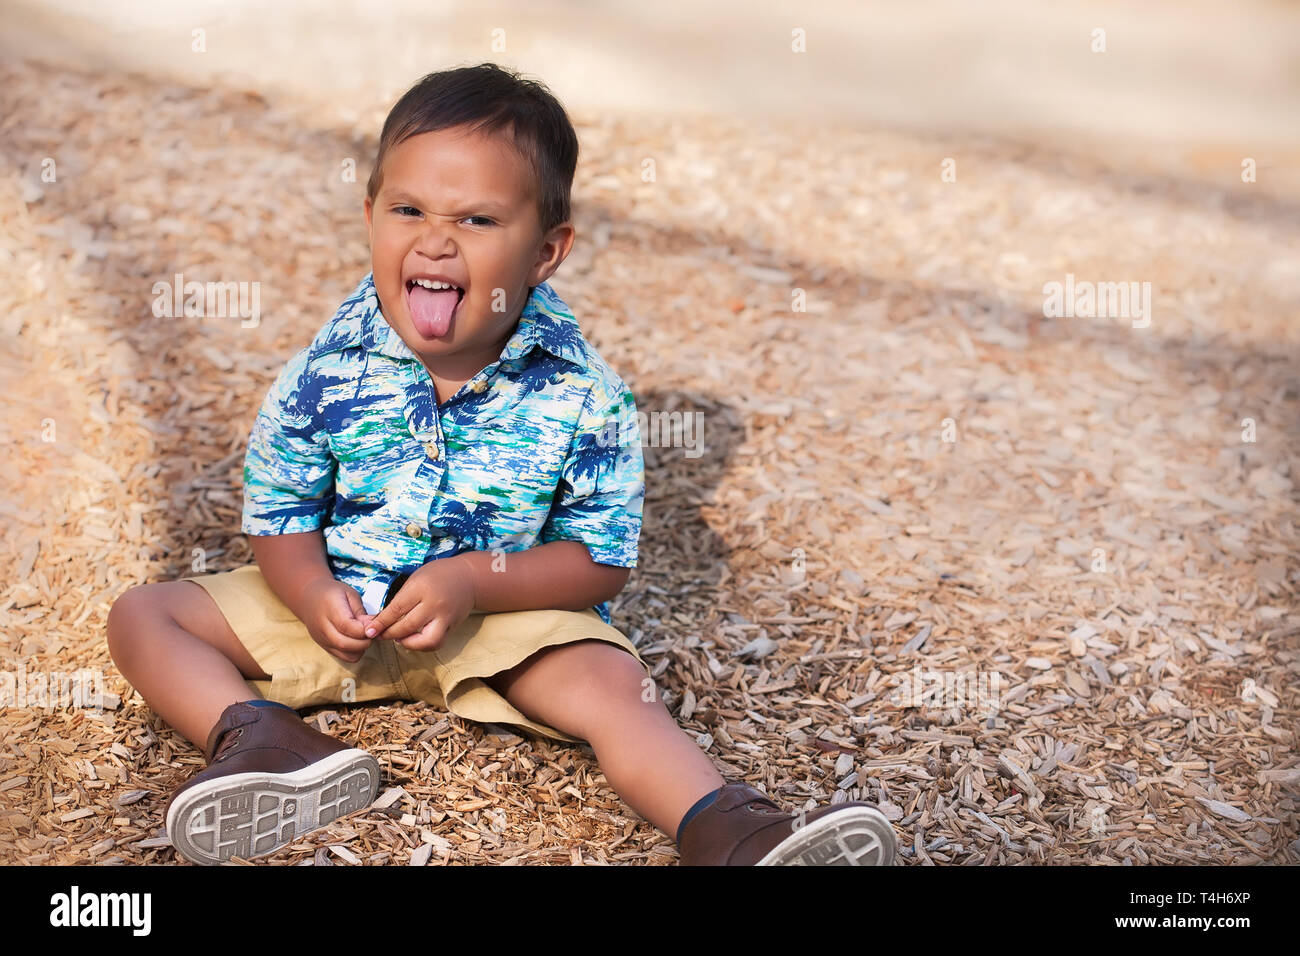 A playful or mischievous 2 year old boy sticking his tongue out making a facial gesture. - Stock Image